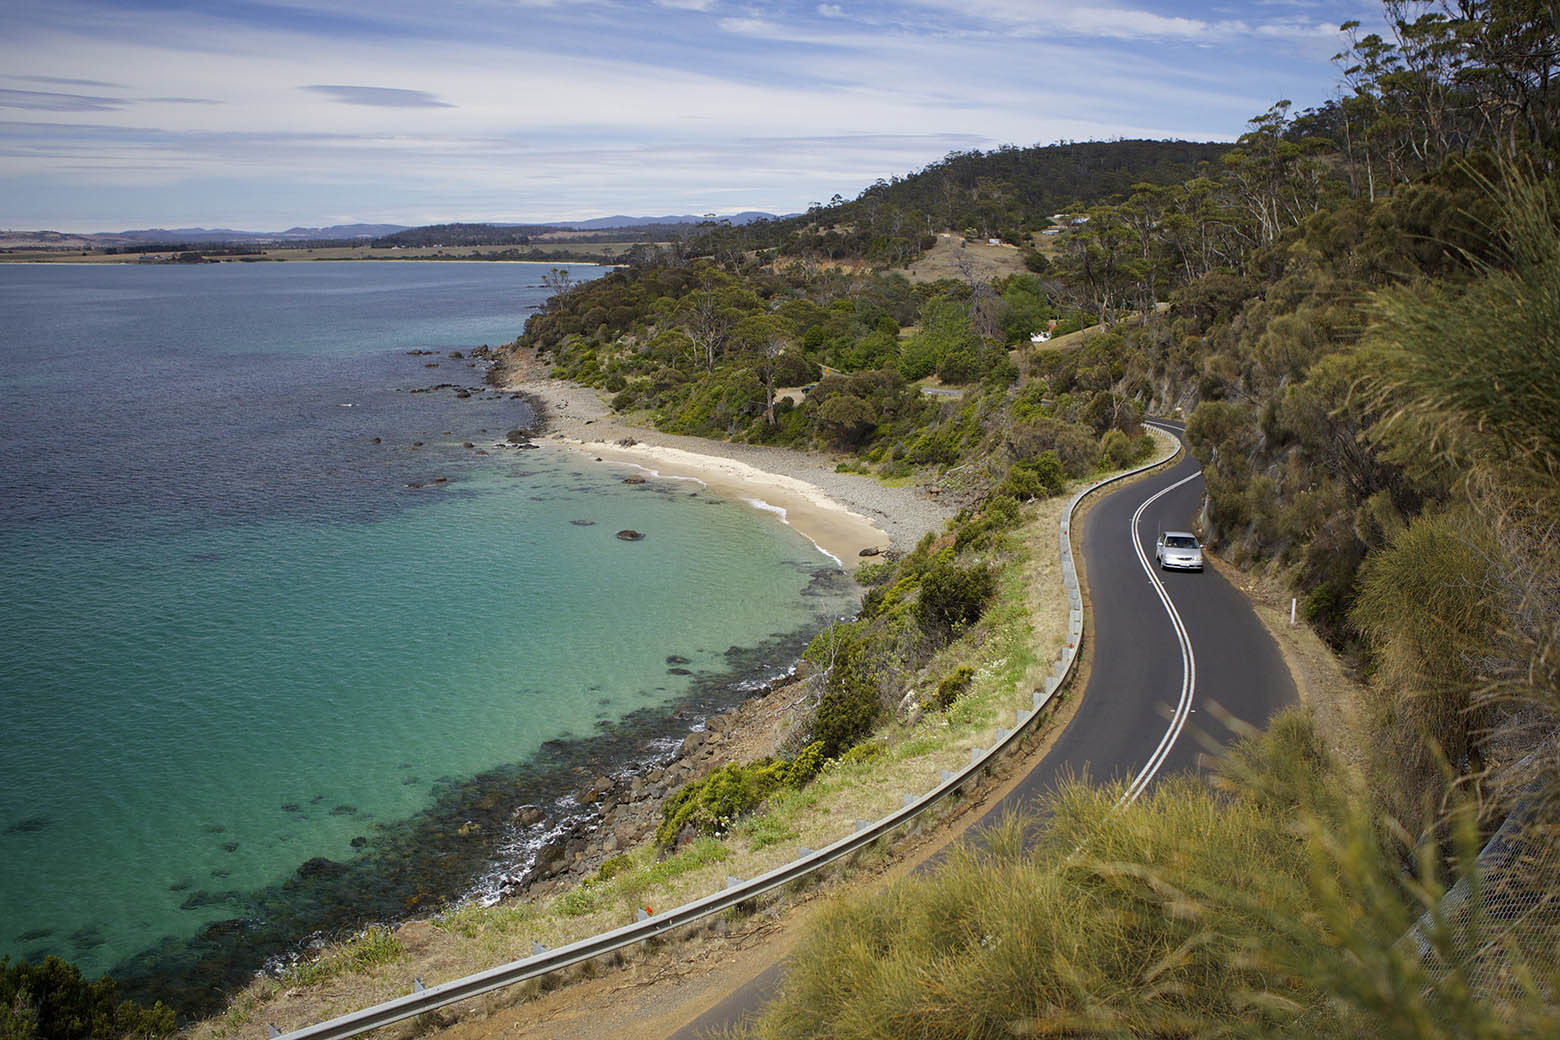 A Tasmania road trip is full of sweeping bends